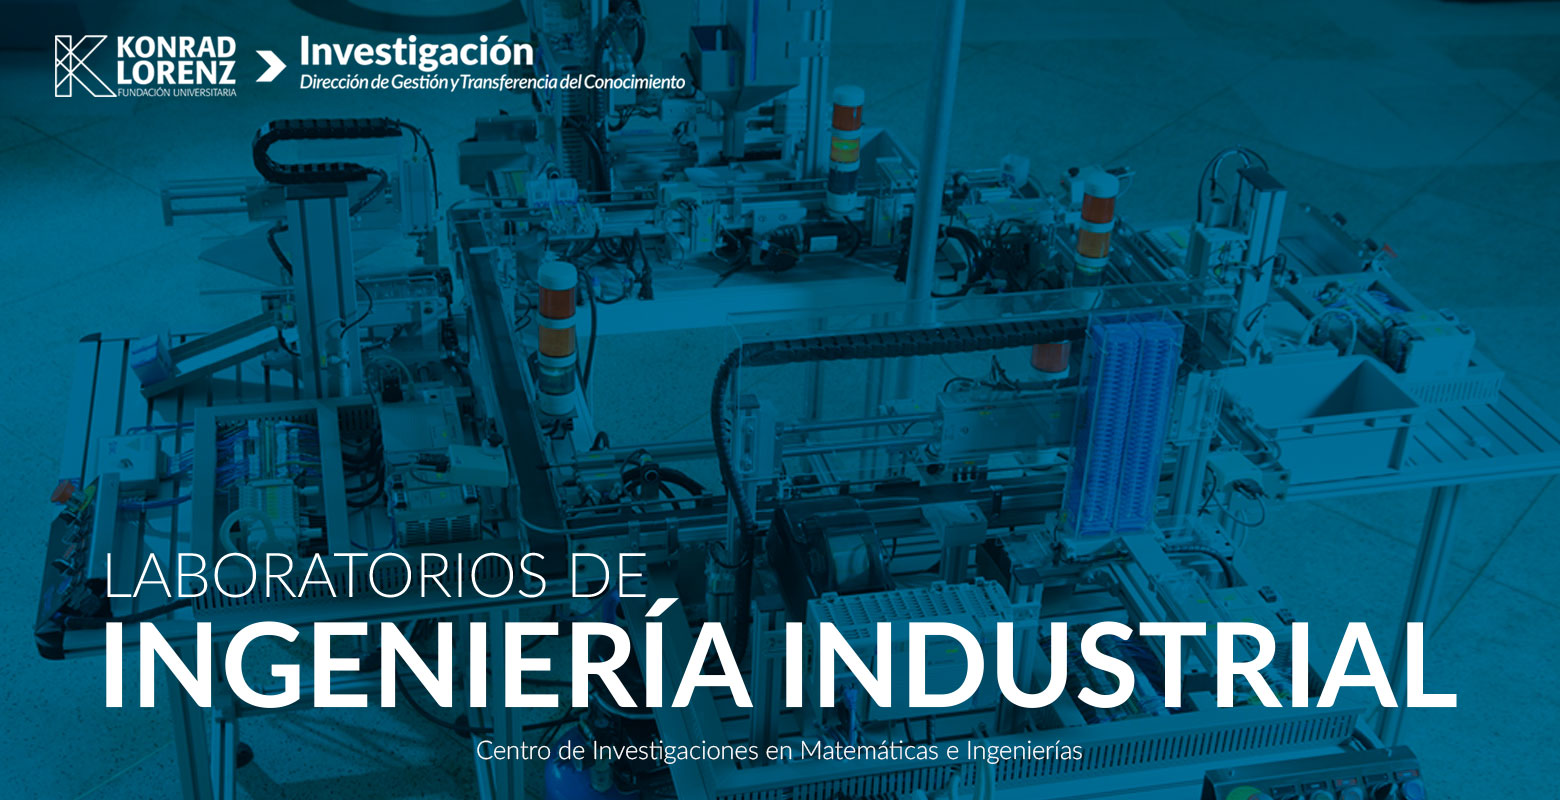 Laboratorios de Ingeniería Industrial